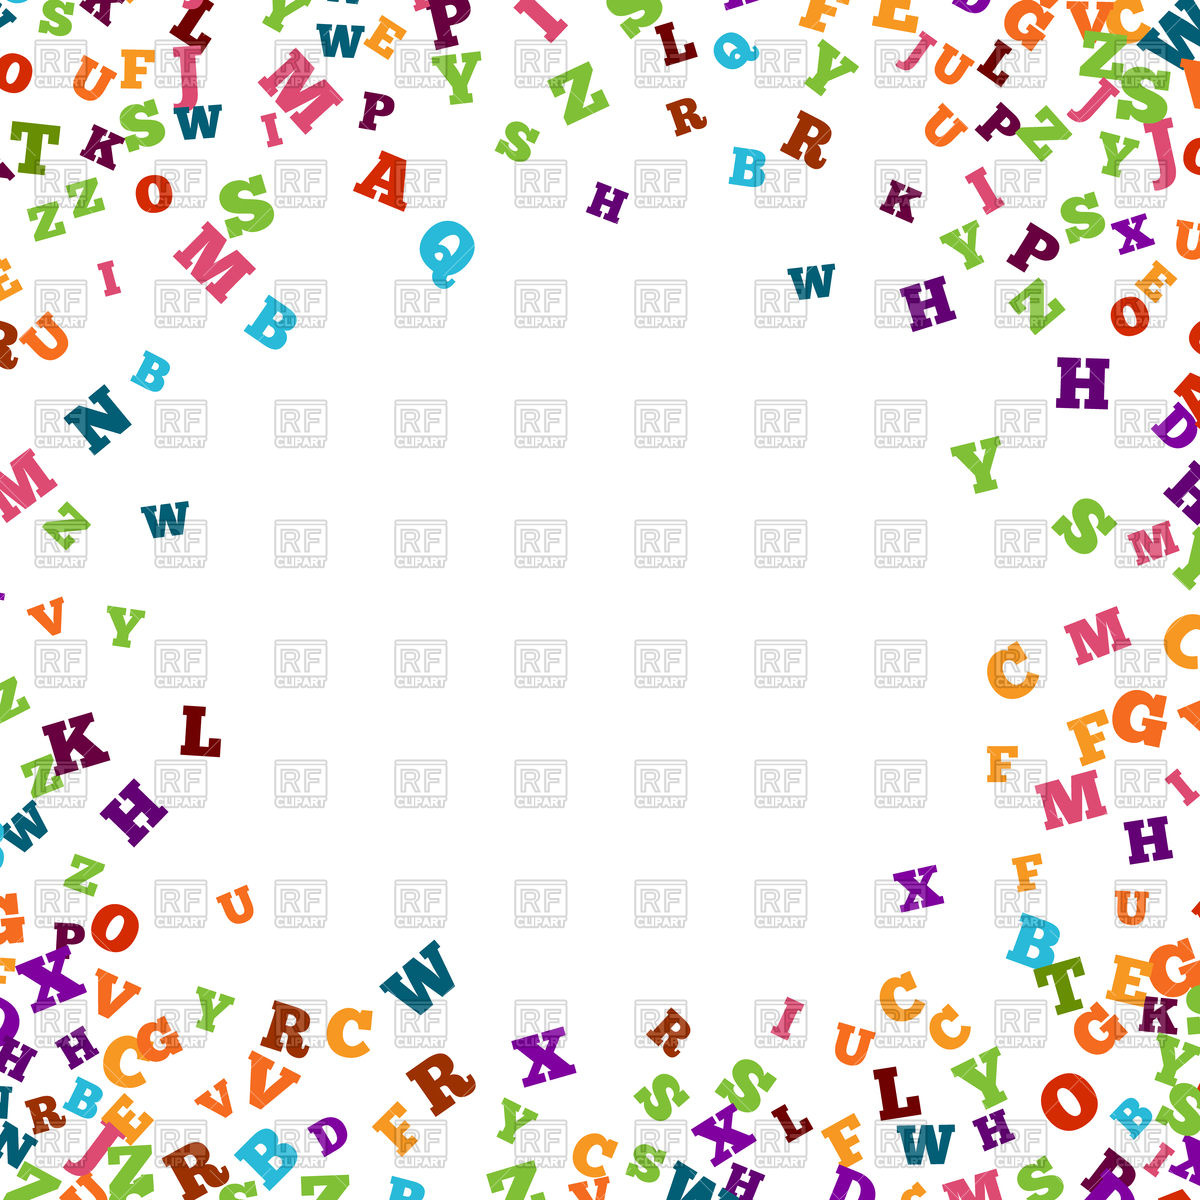 Alphabet people clipart. Border clipartfest abstract colorful